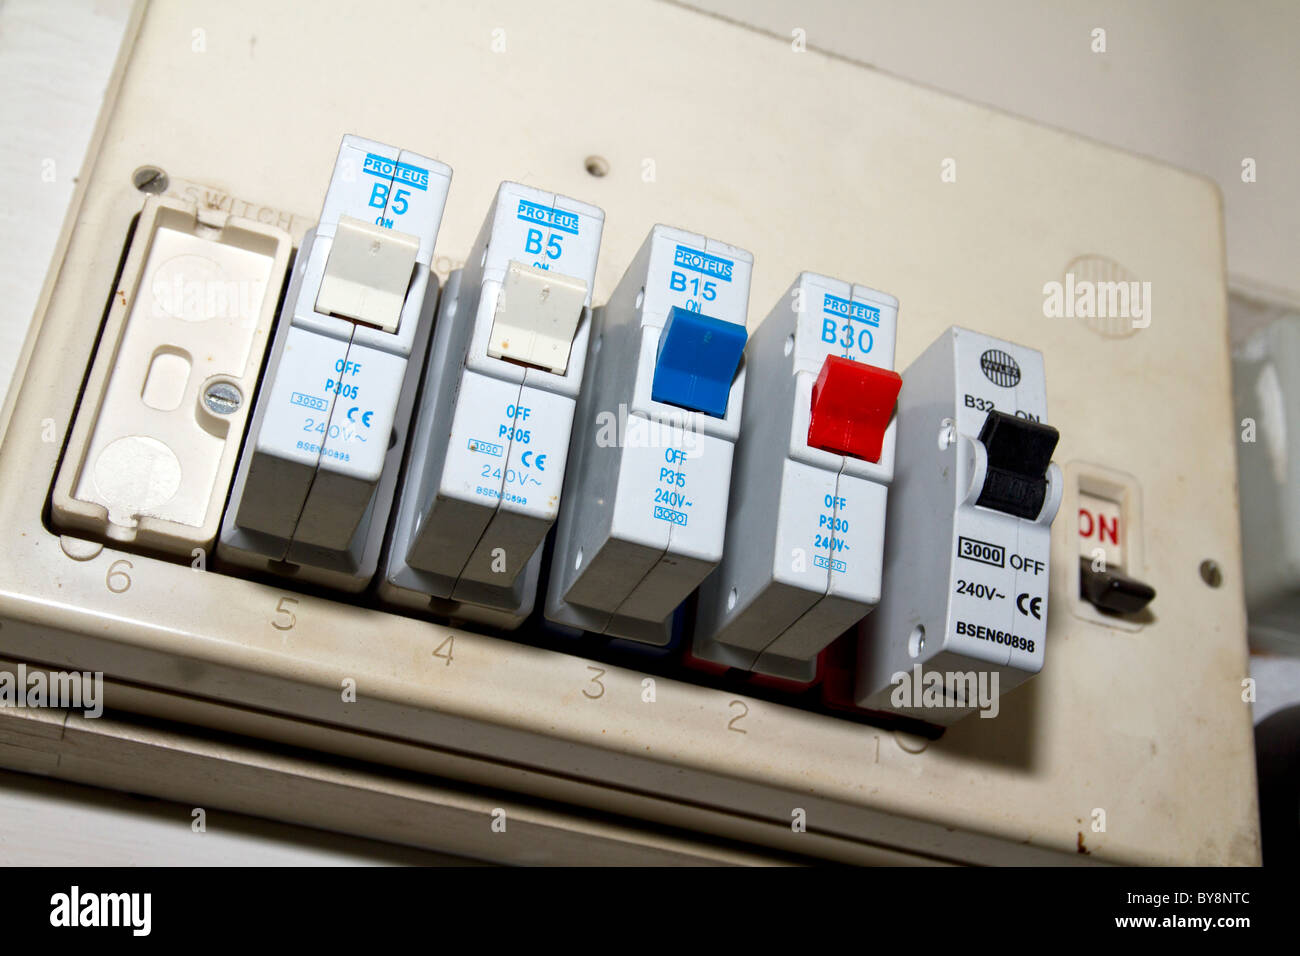 uk old electric fuse box in a london house stock photo 33998844 house electric fuse box holder old electric fuse box in a london house